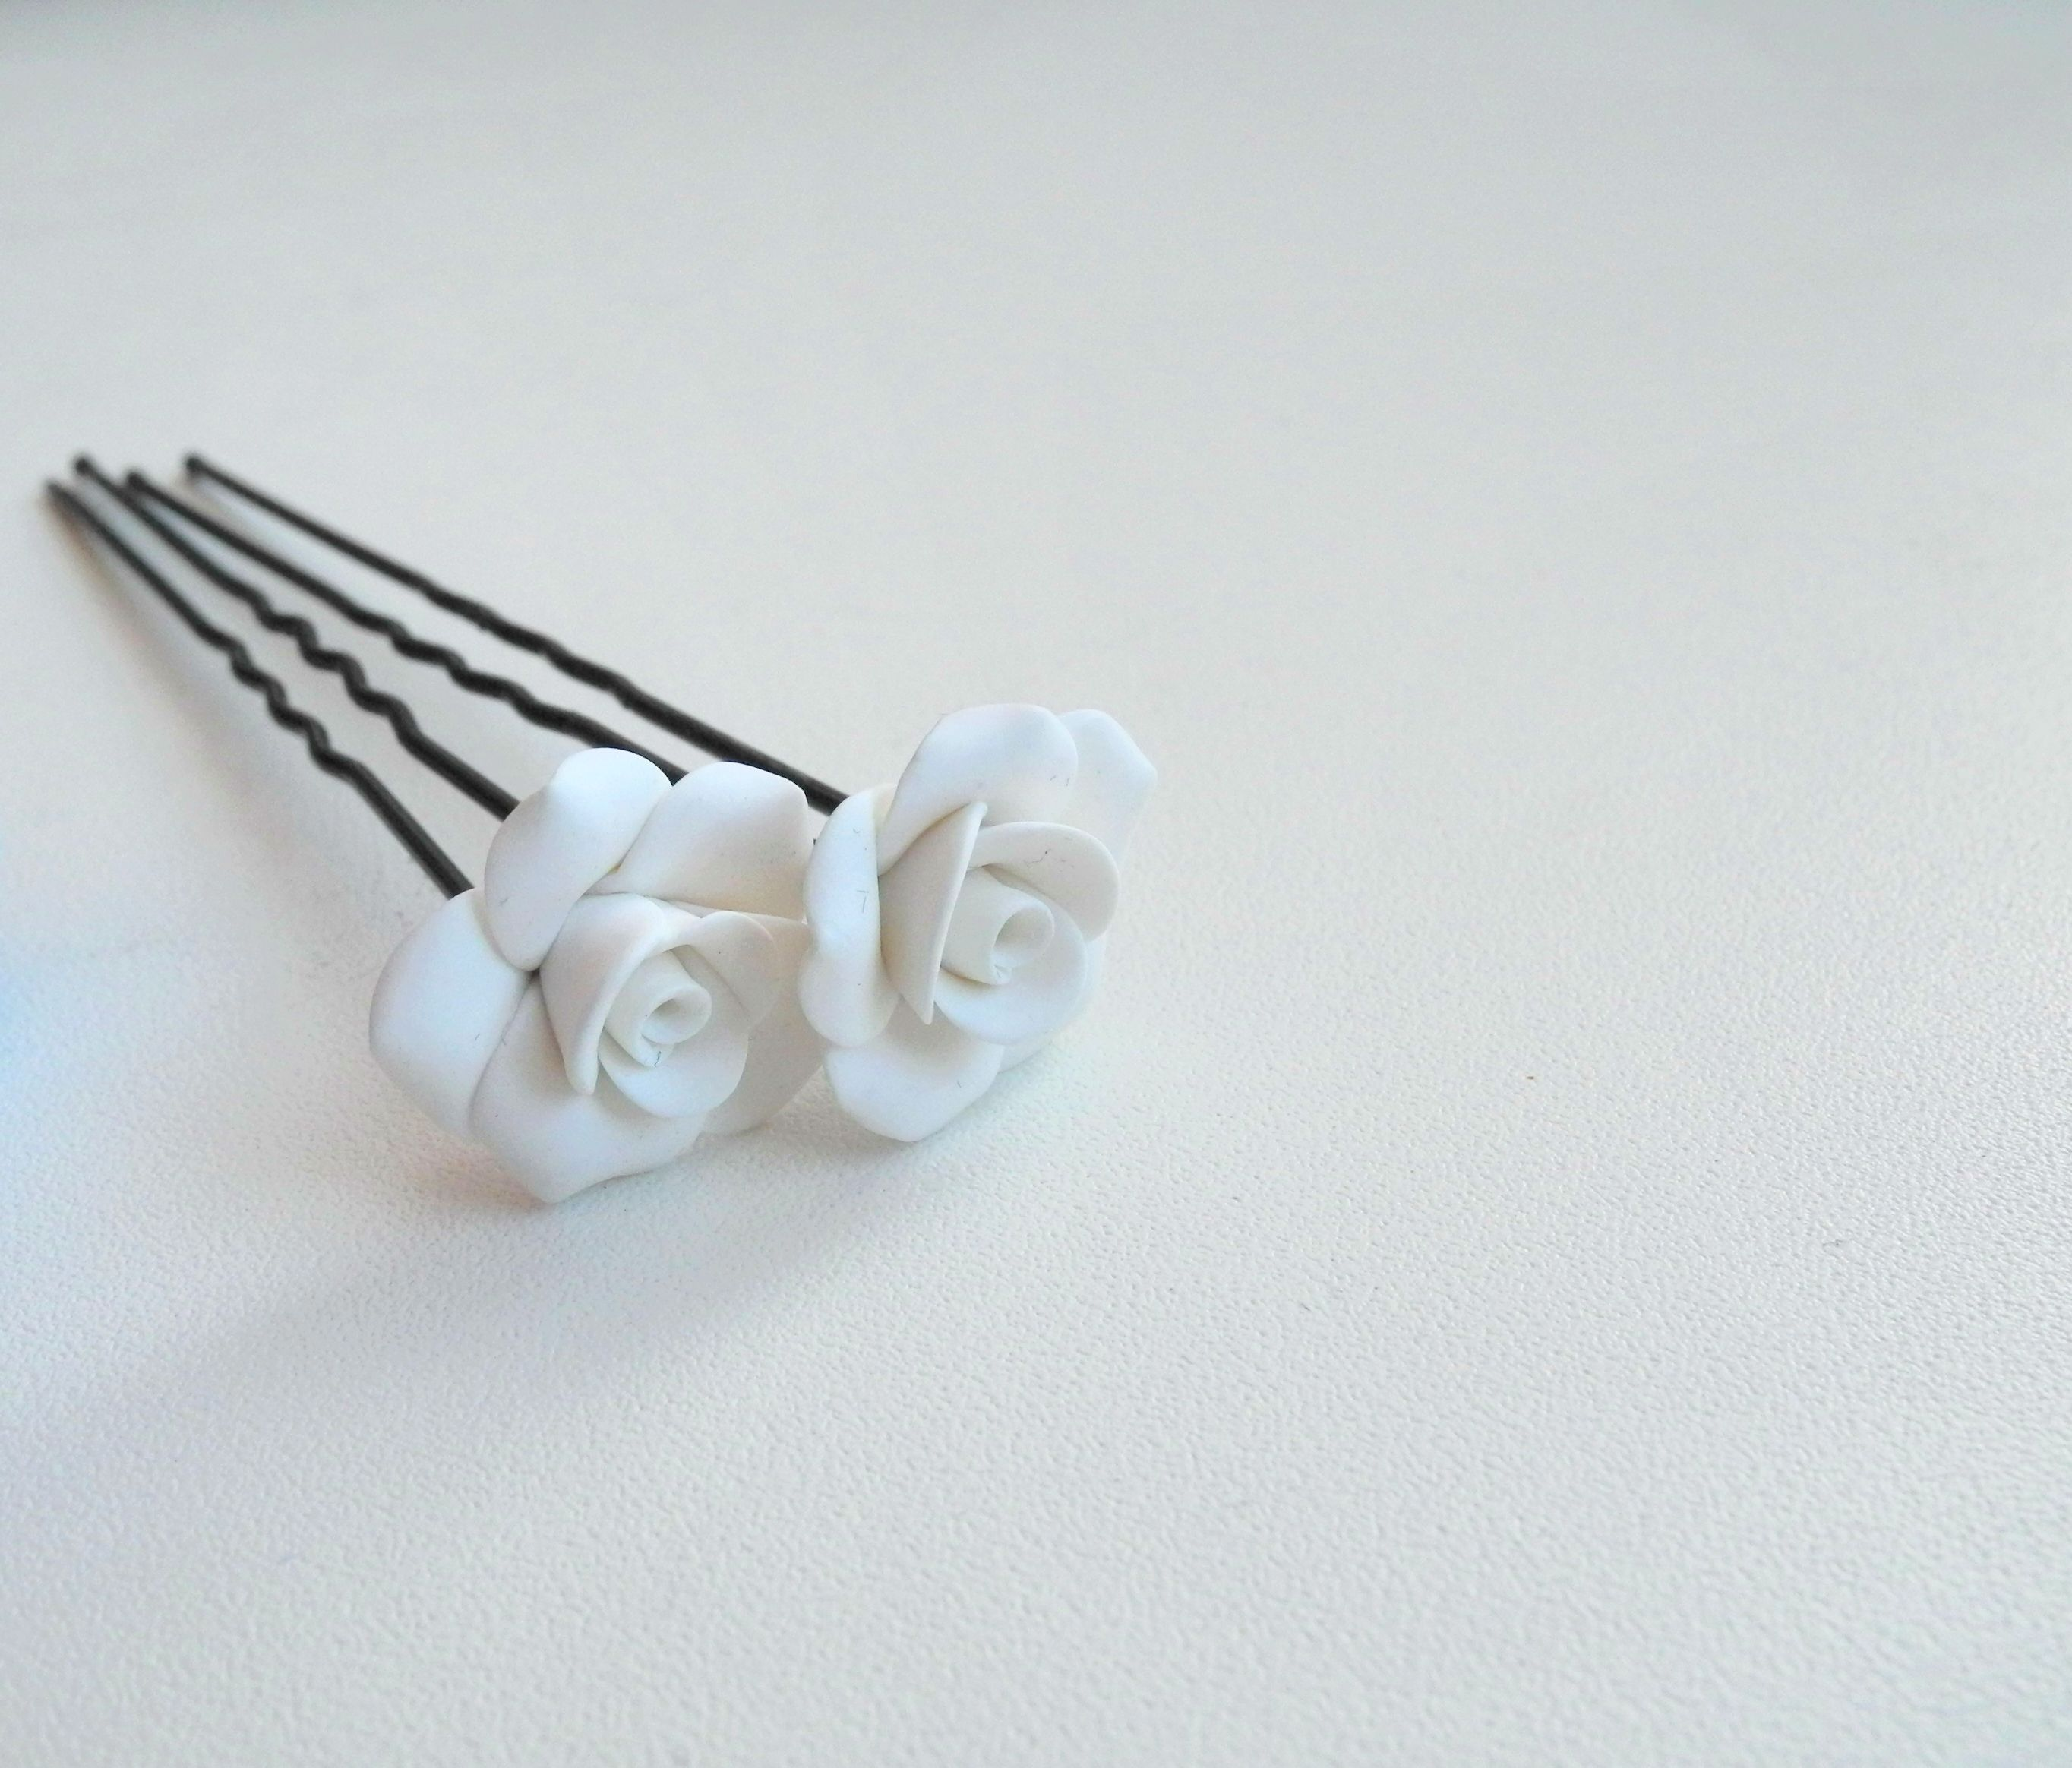 bijou flowers hairpin bobbypin handmade polynerclay handmadegift rose wedding